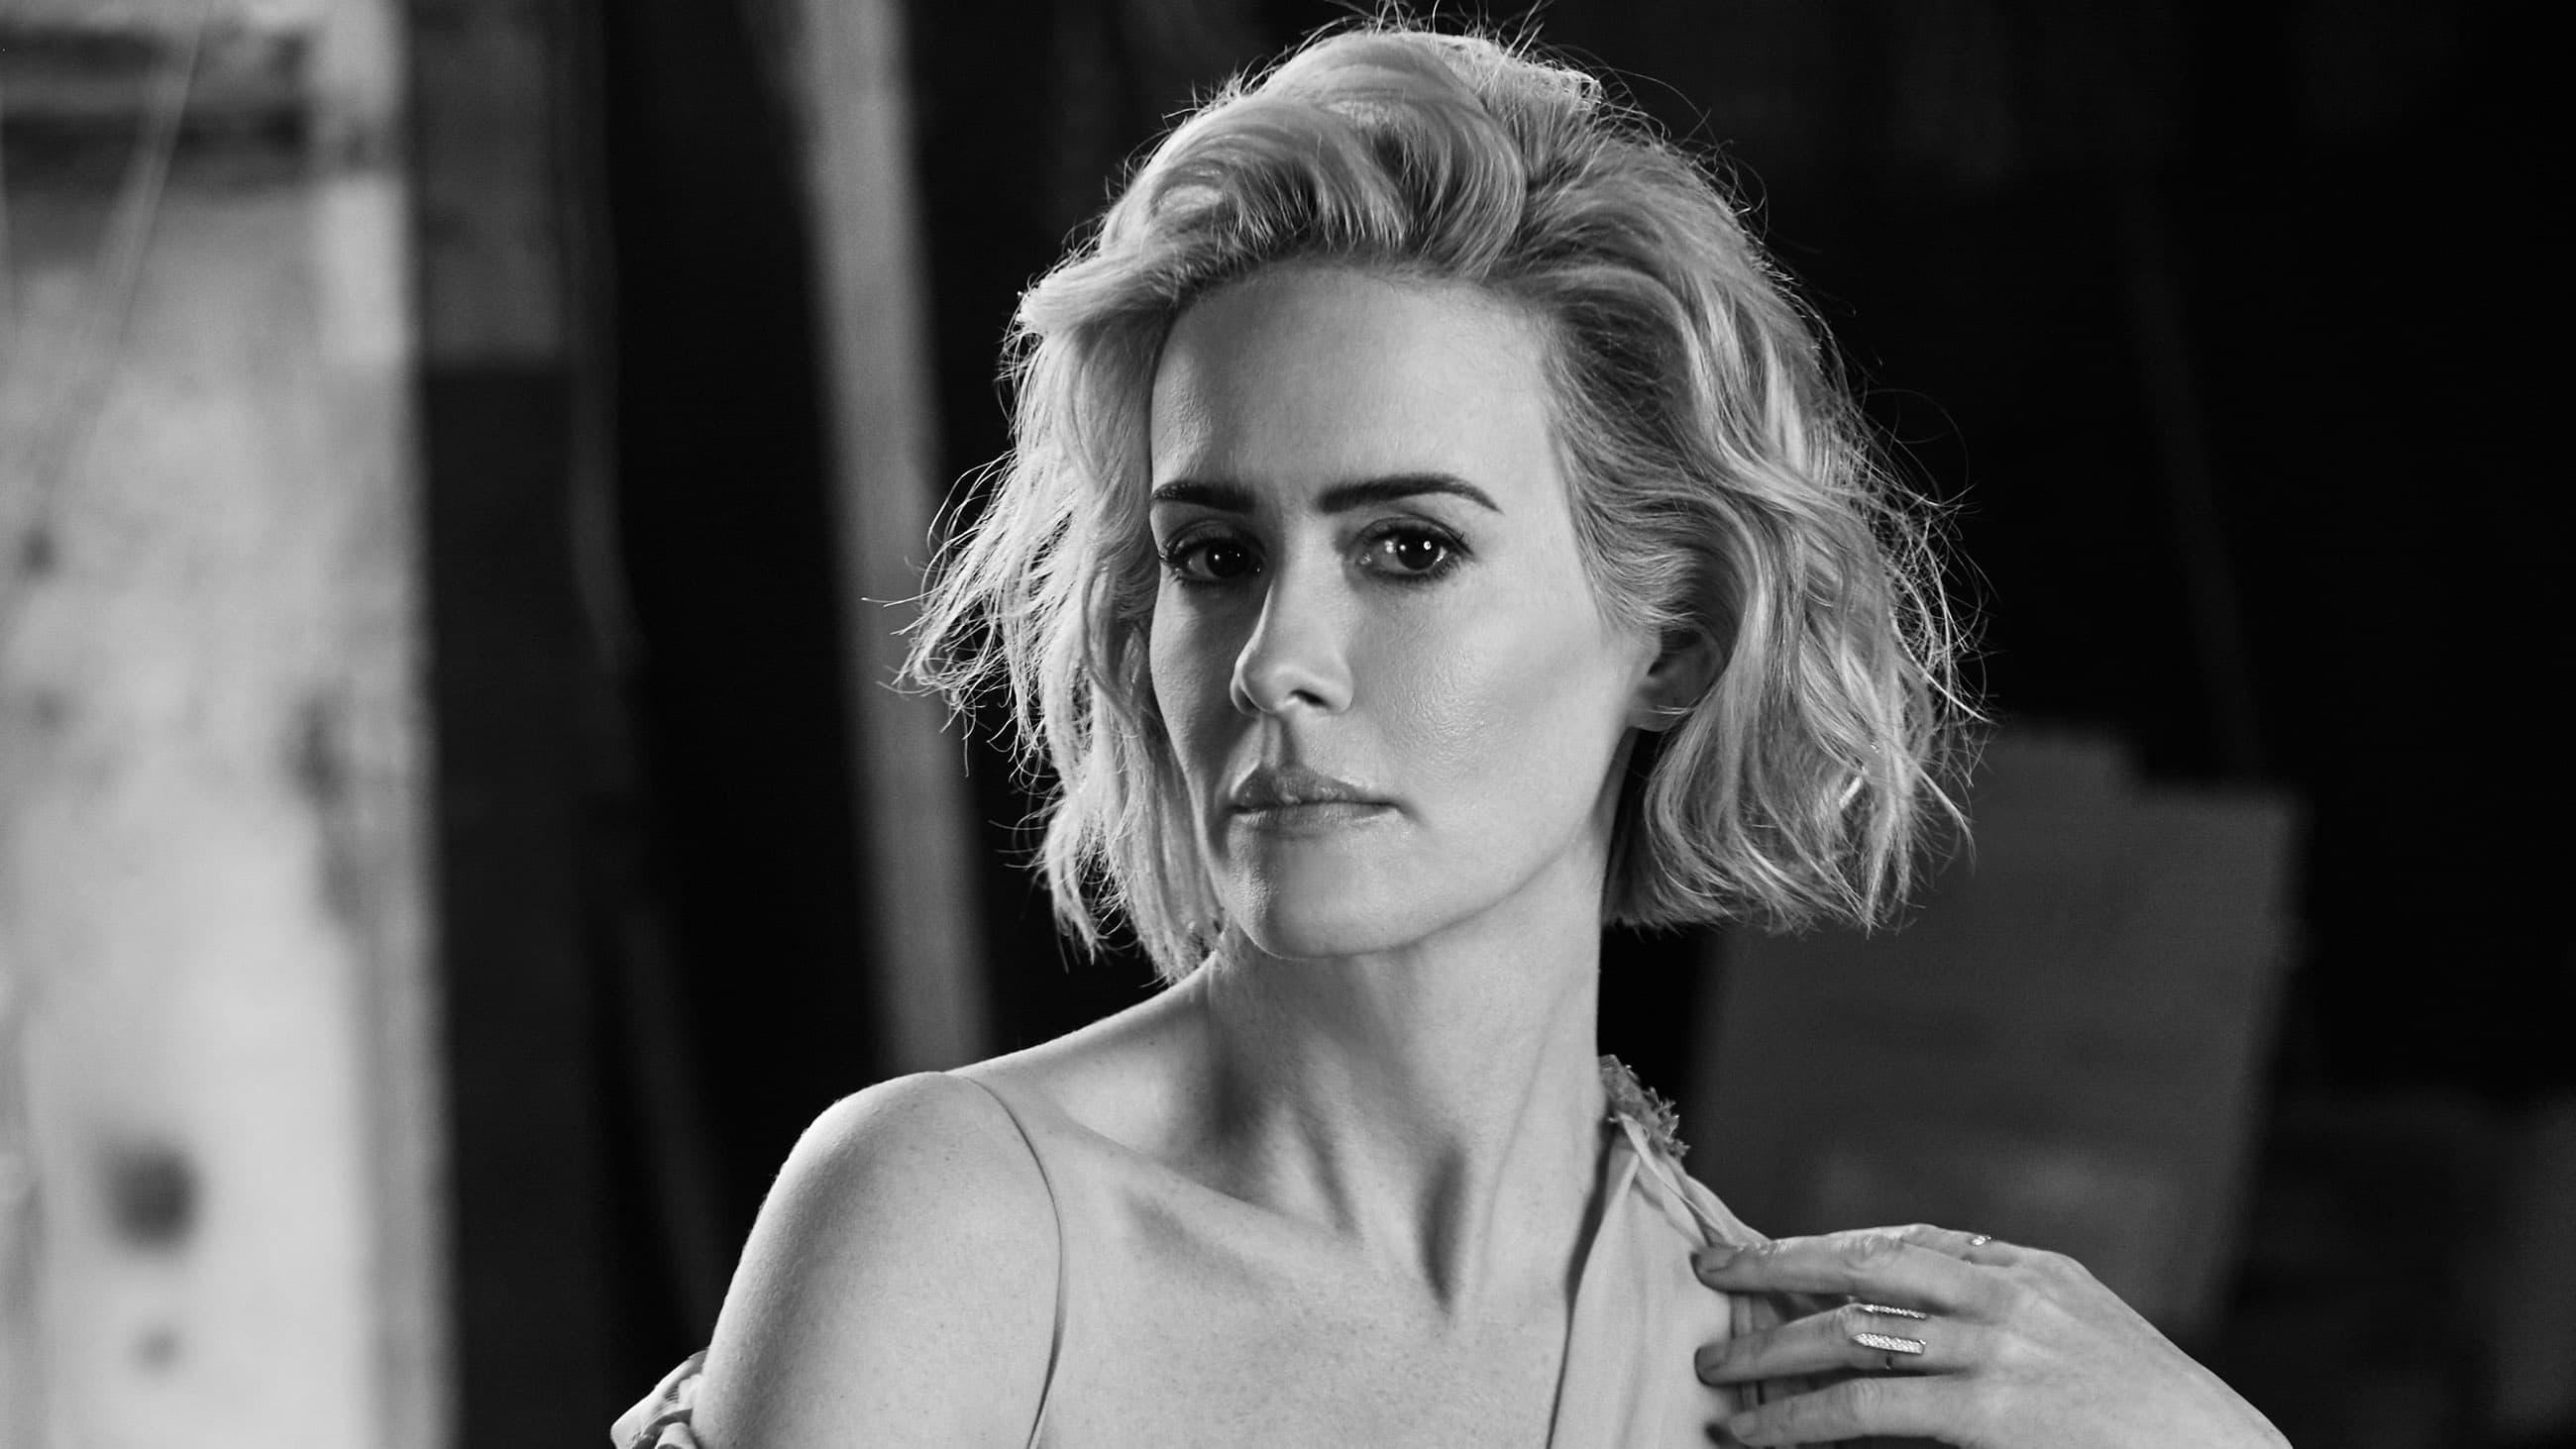 Wallpaper of Sarah Paulson Black And White High Quality